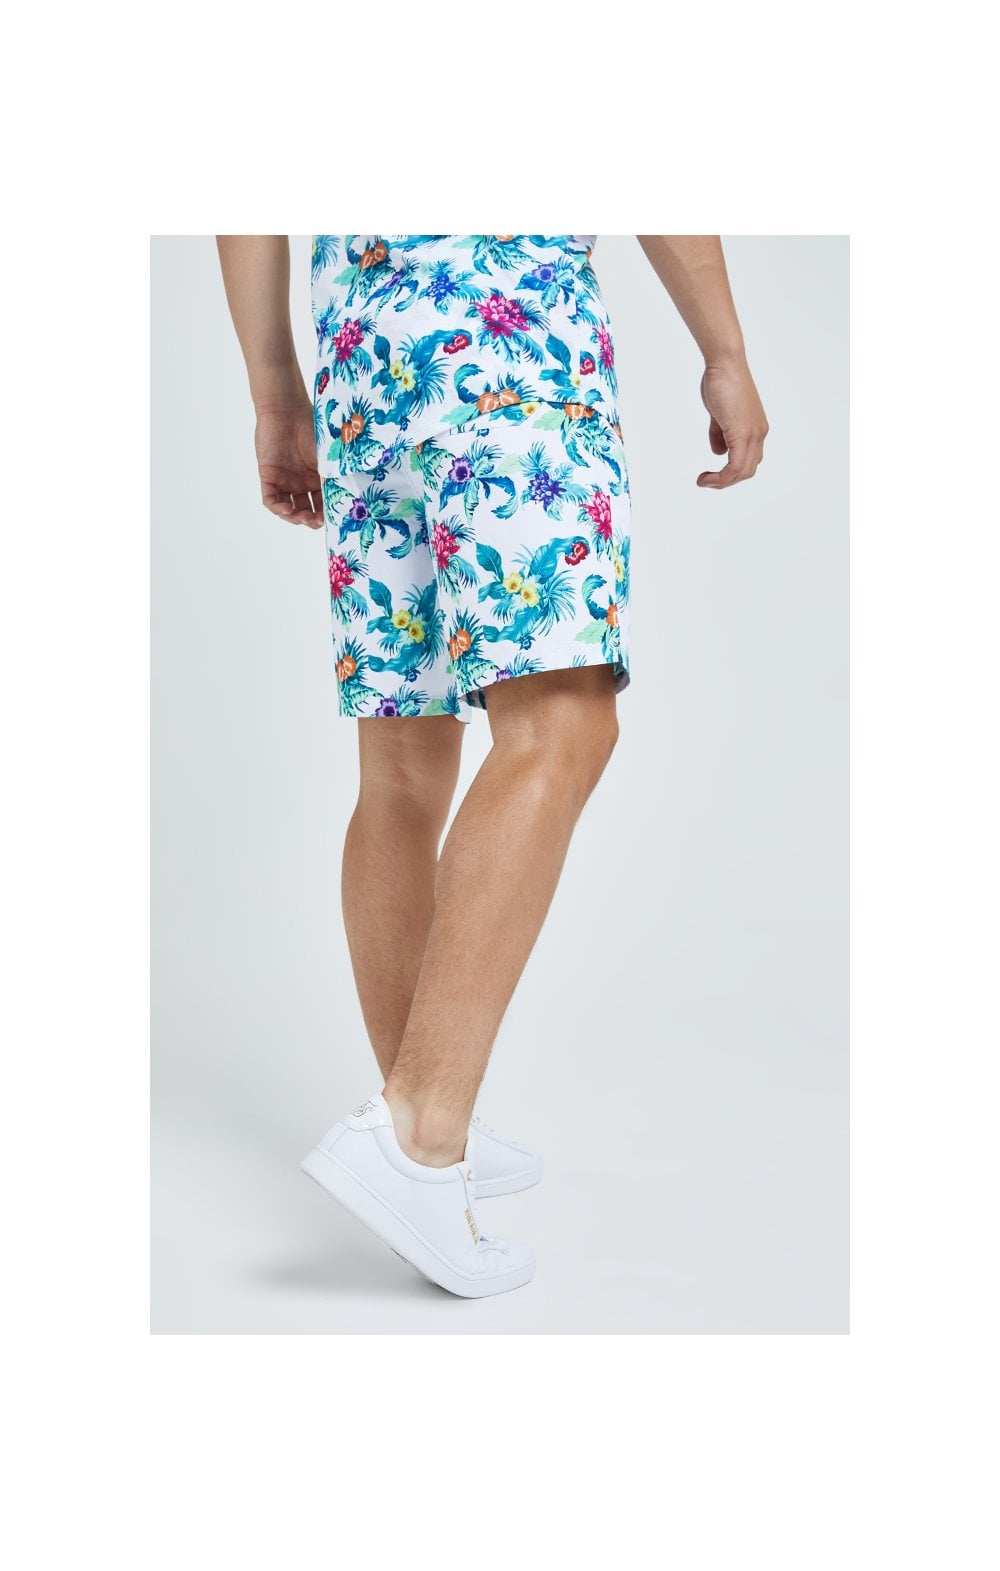 Illusive London Swim Shorts - White & Floral (5)